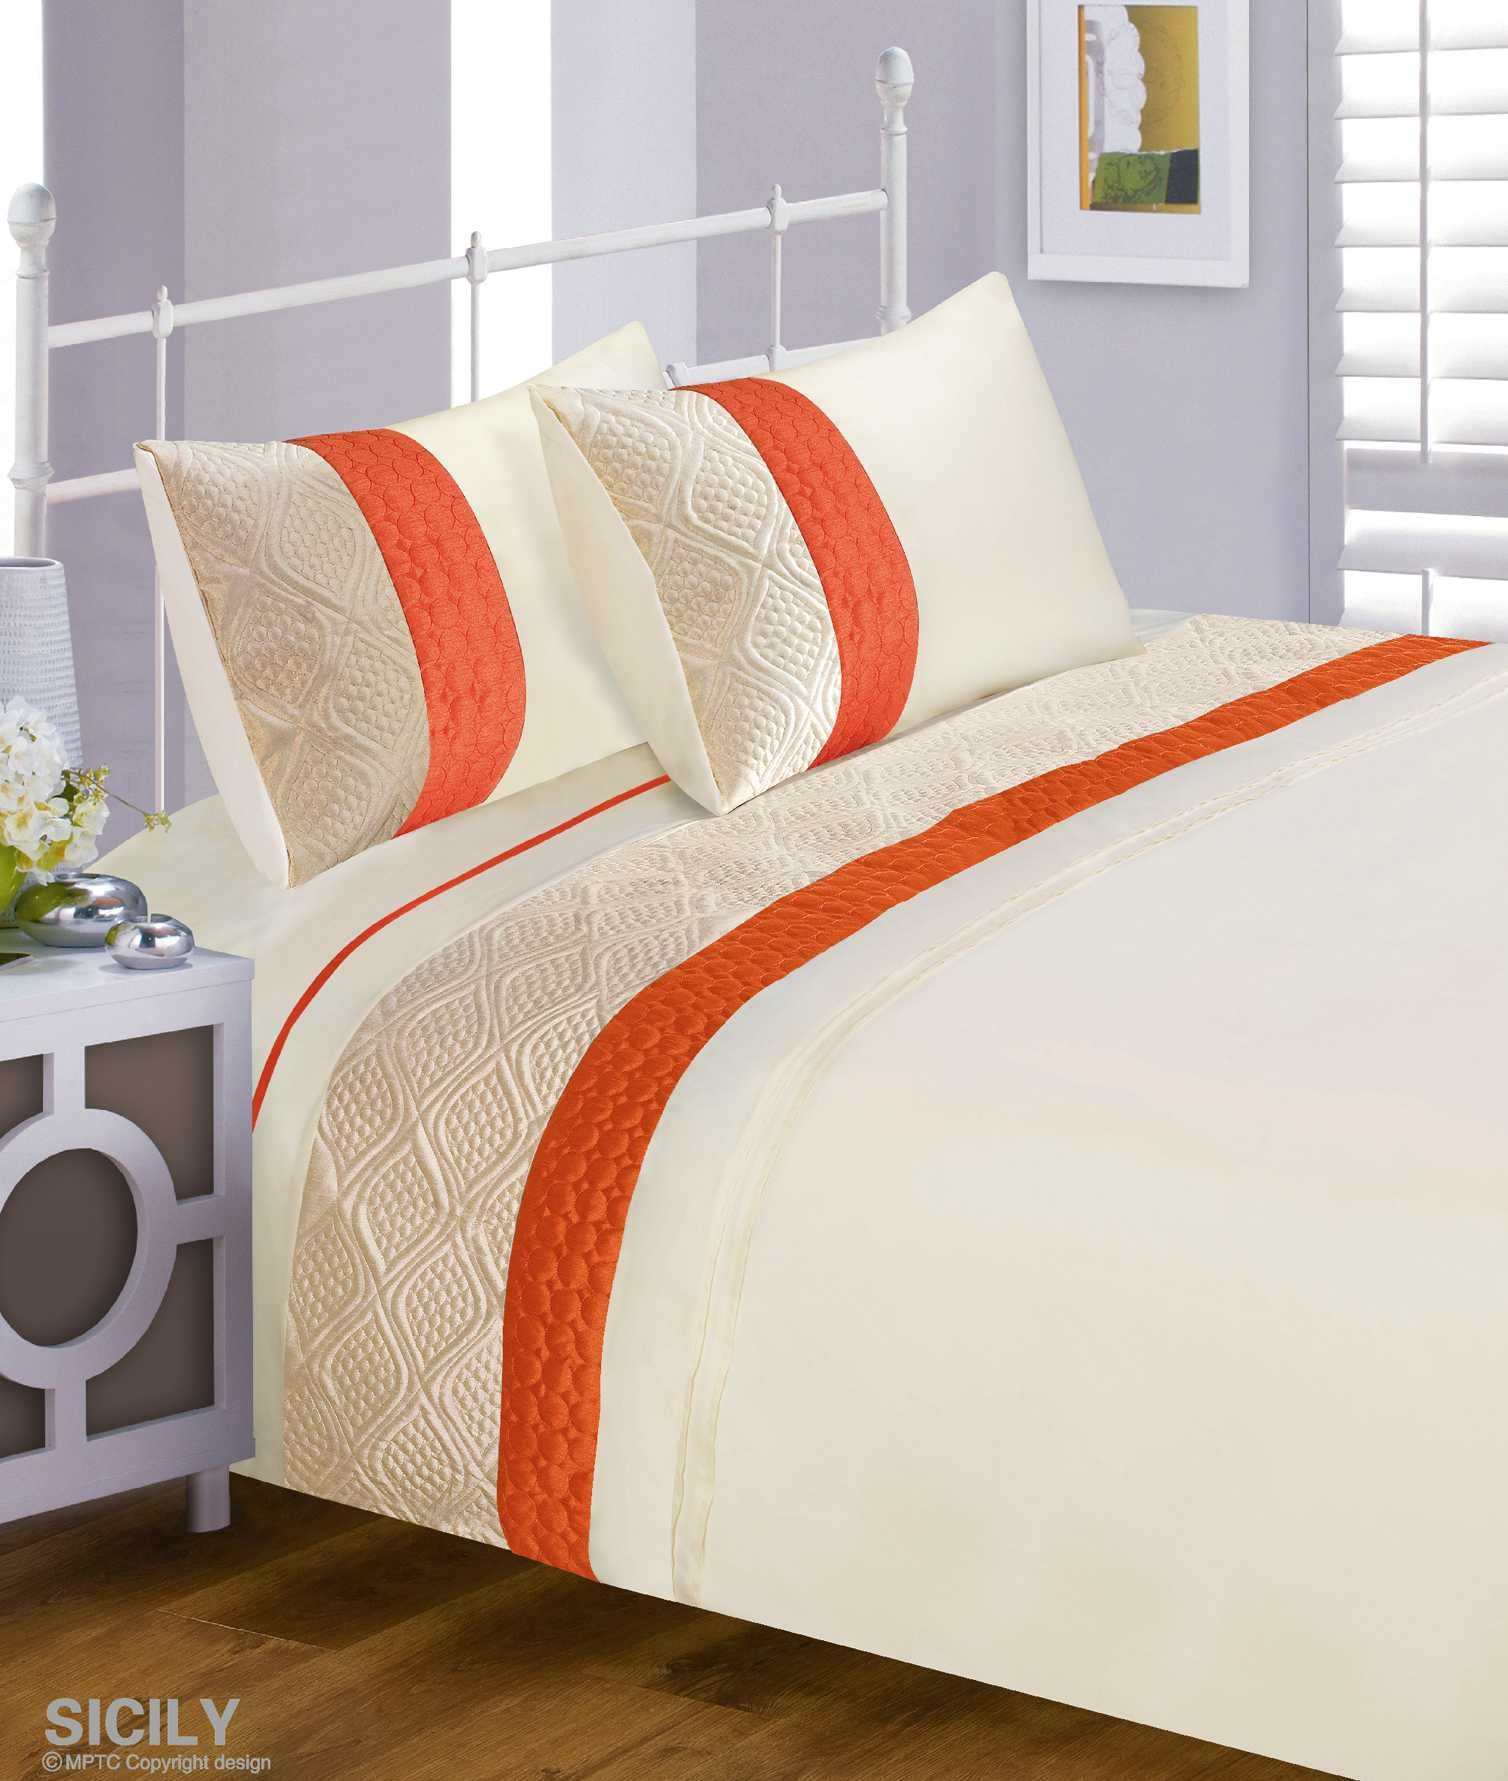 Double Bed Orange Sicily Modern Stylish Ribbed Duvet Quilt Cover Bedding Set   Amazon.co f9f532cde8c8